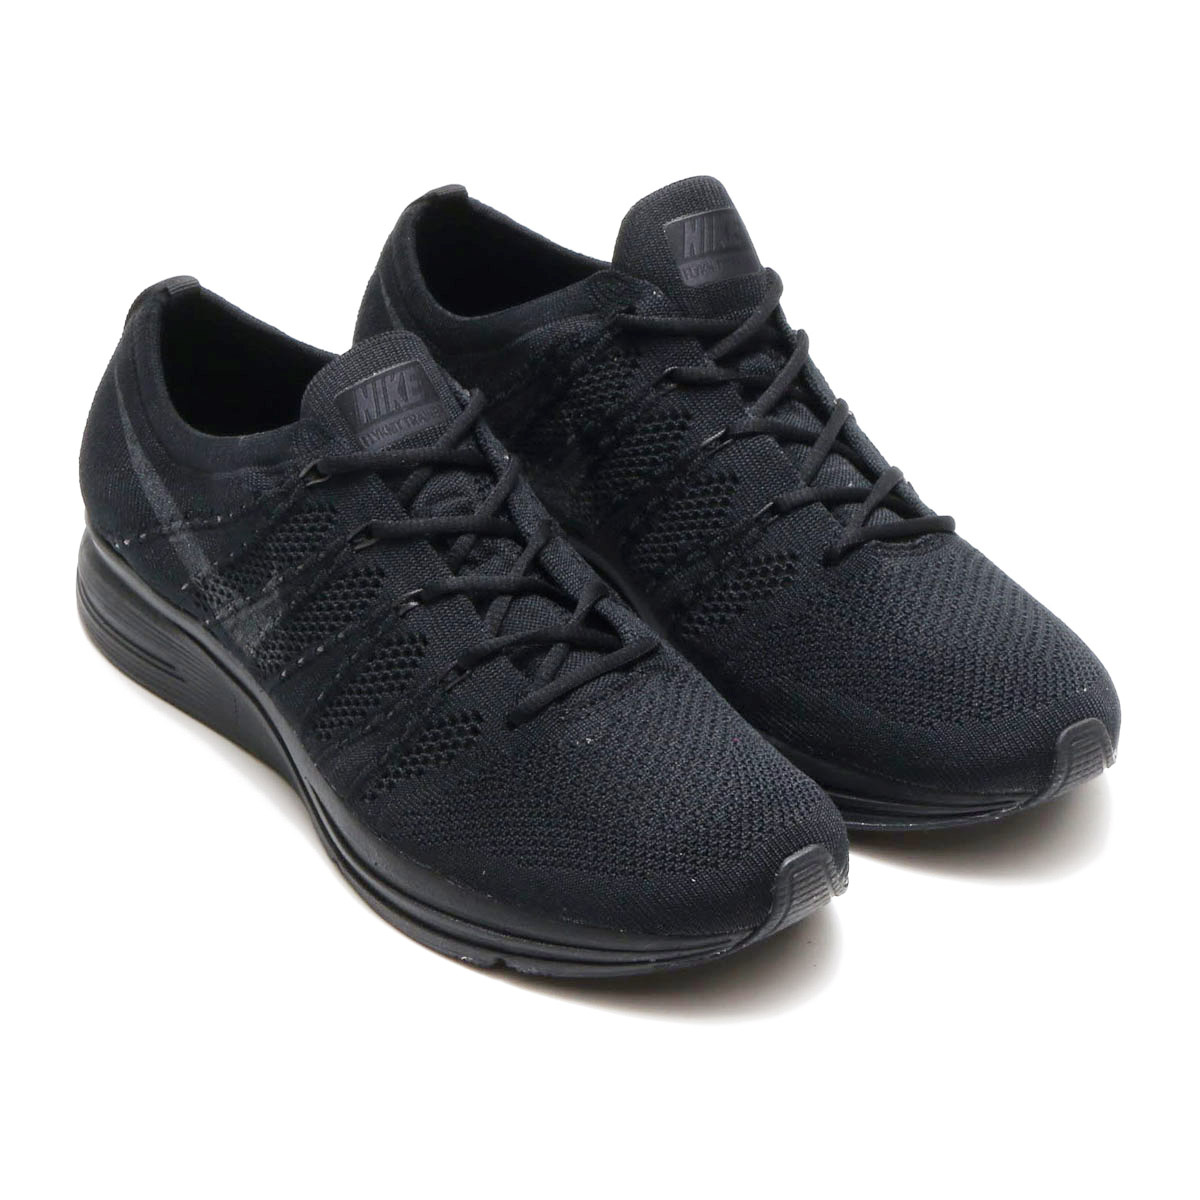 a8e1e105f7a7f3 NIKE FLYKNIT TRAINER (Nike fried food knit trainer) (BLACK ANTHRACITE-BLACK)  18SP-S